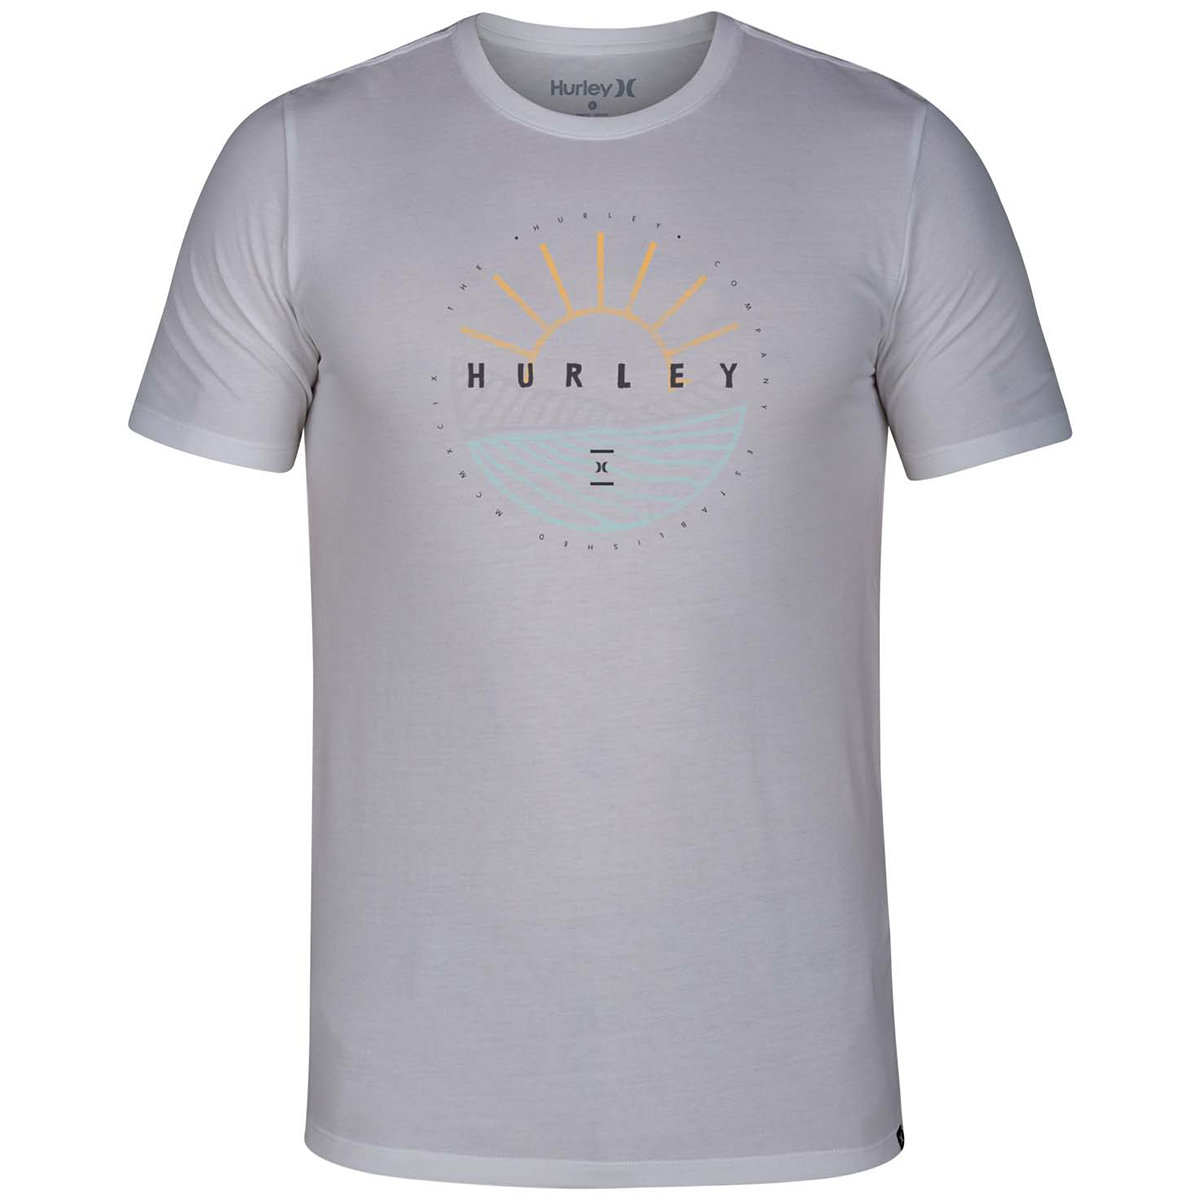 Hurley Young Men's Dri Fit Dawn Breaking Tee - White, M